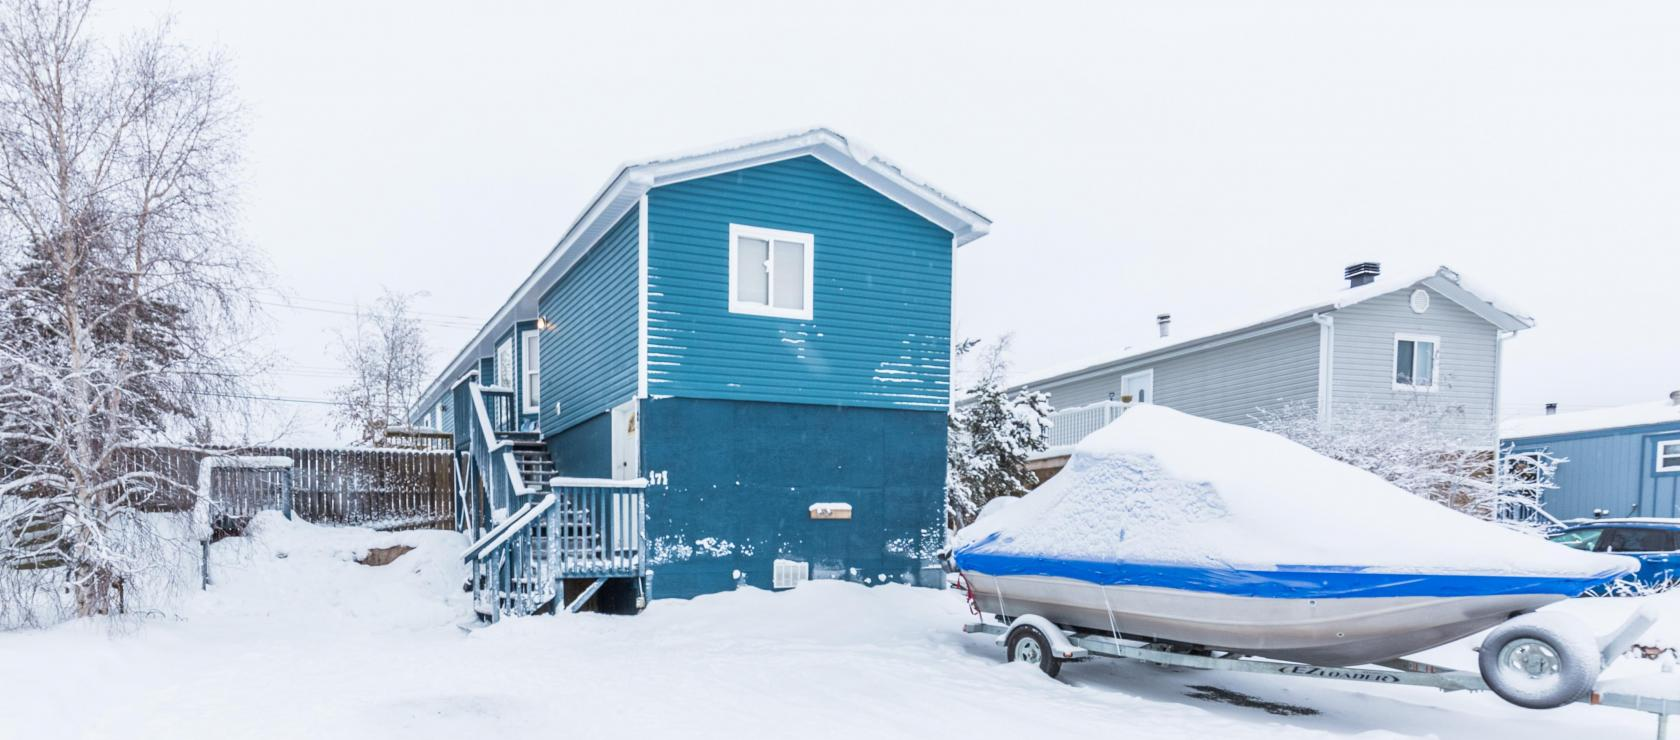 171 Magrum Crescent, Range Lake, Yellowknife 2